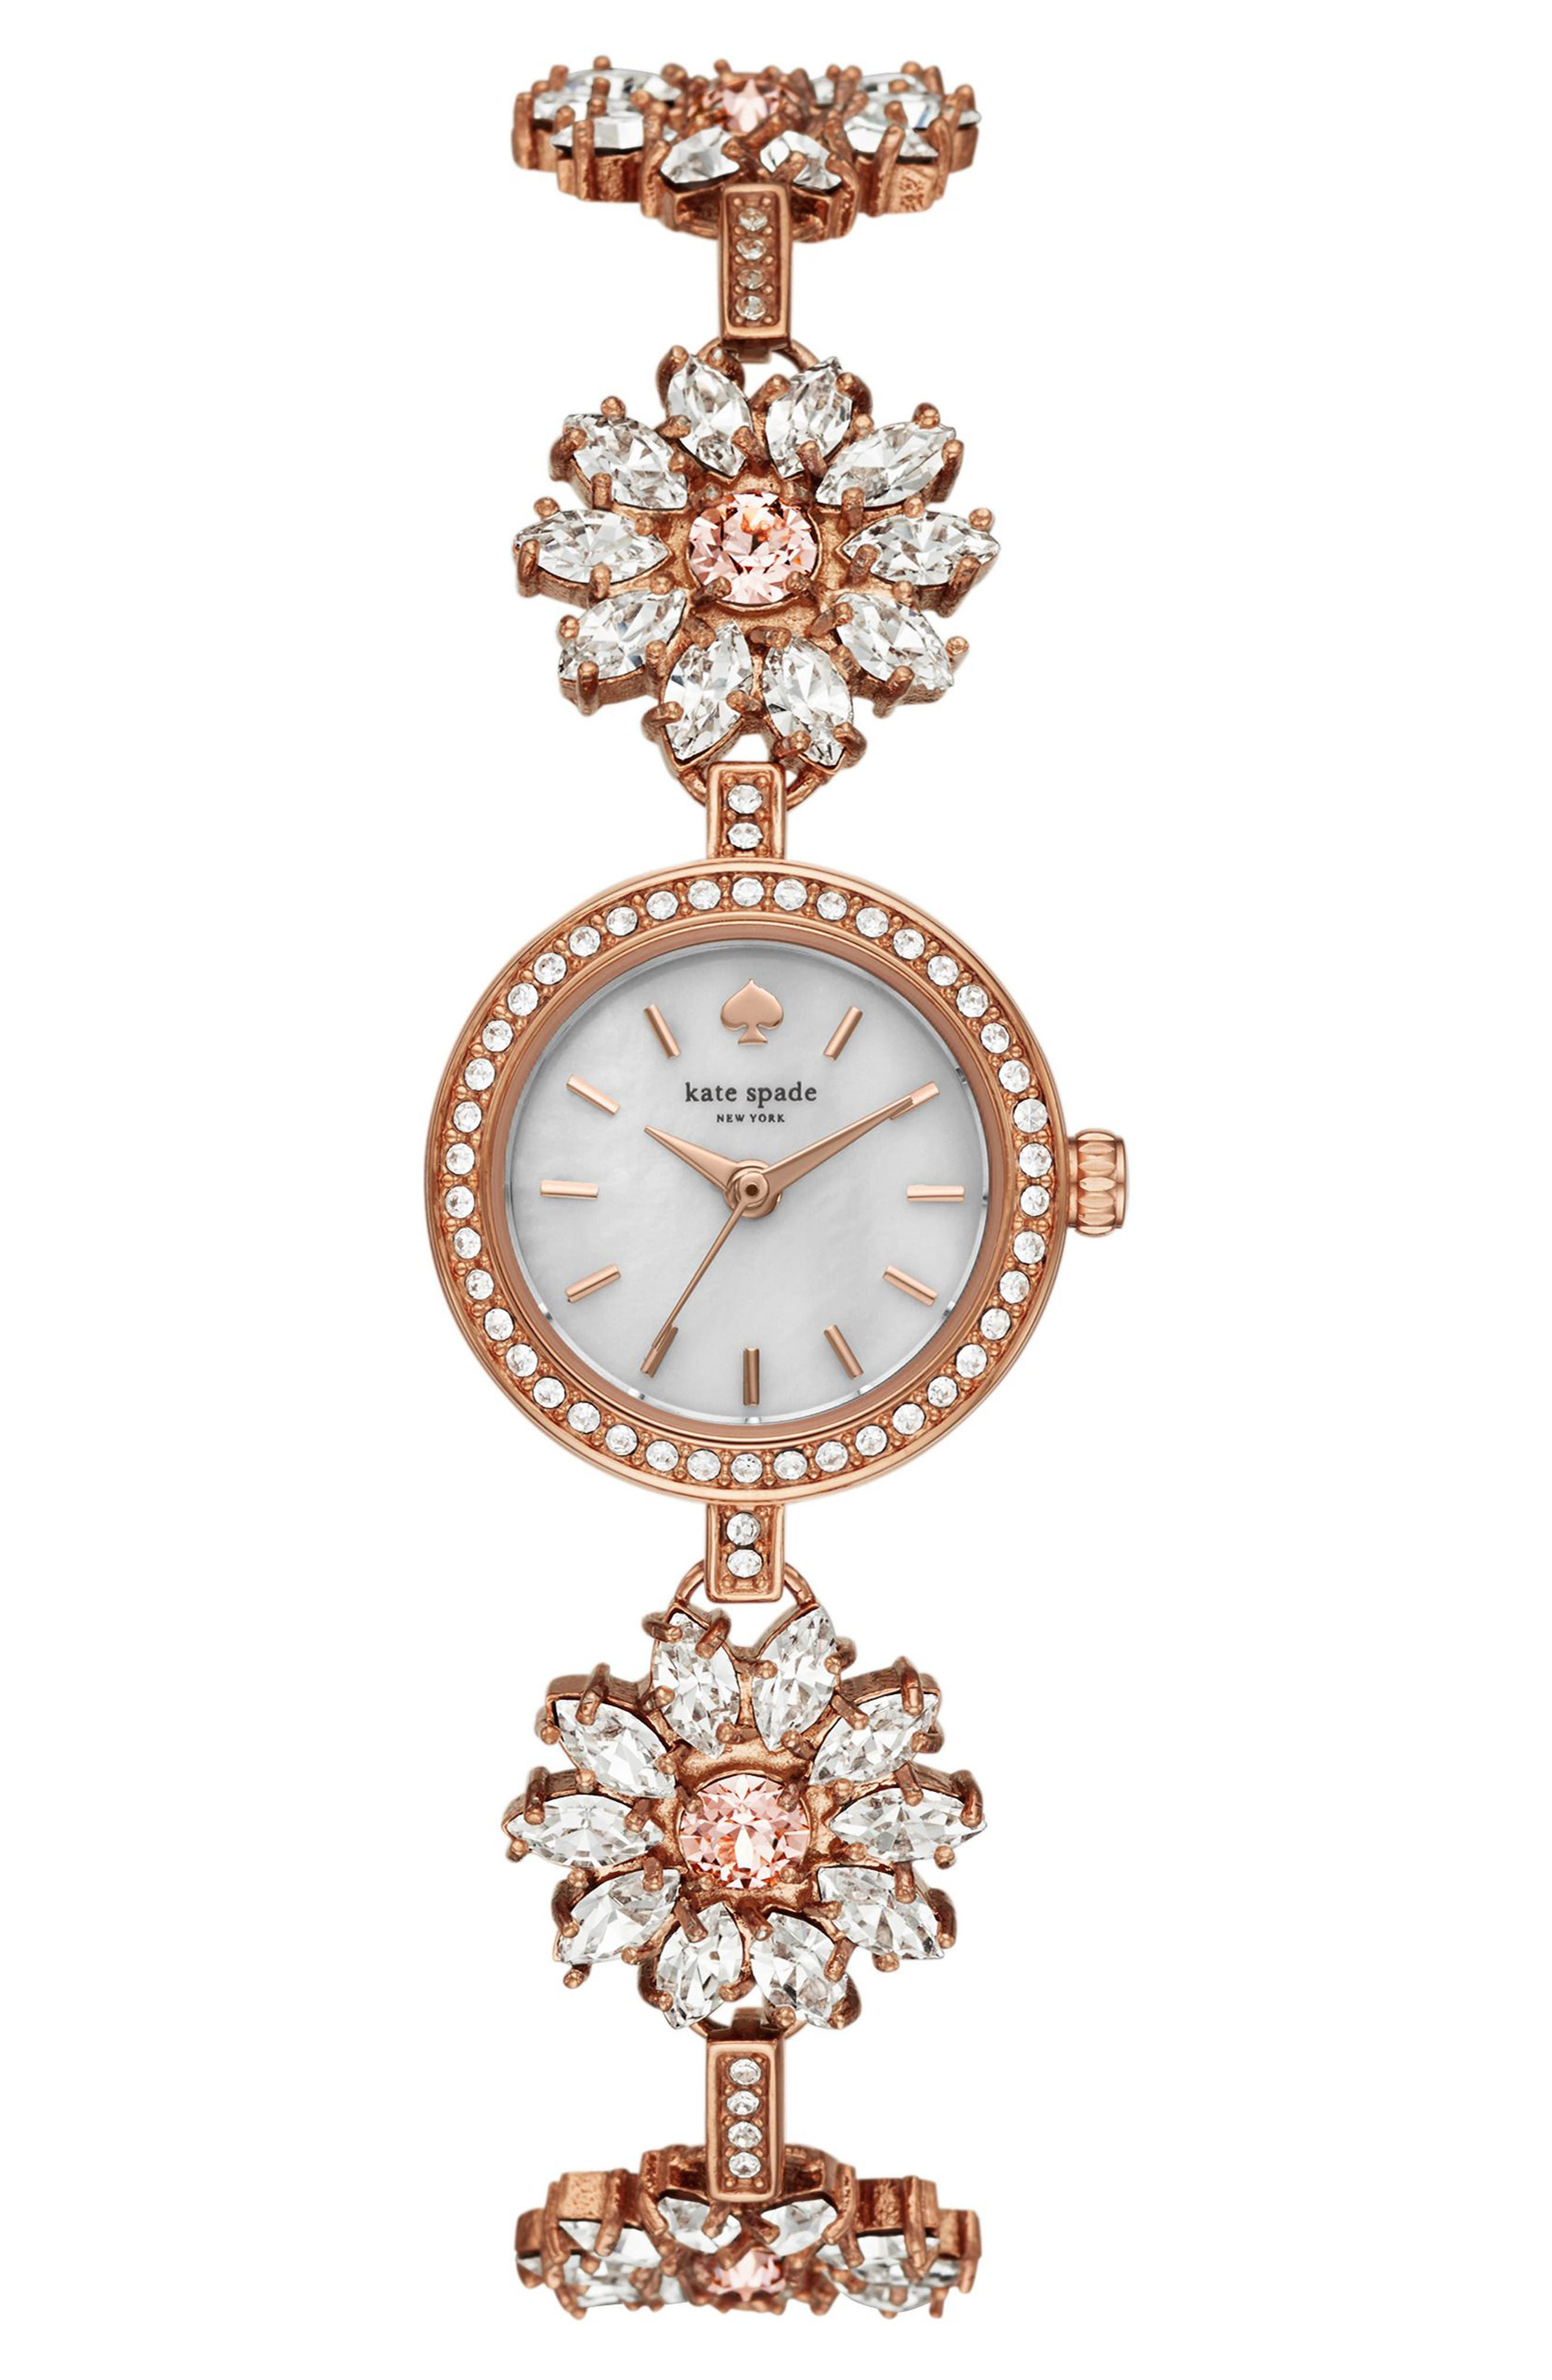 kate spade new york daisy chain crystal watch, 20mm